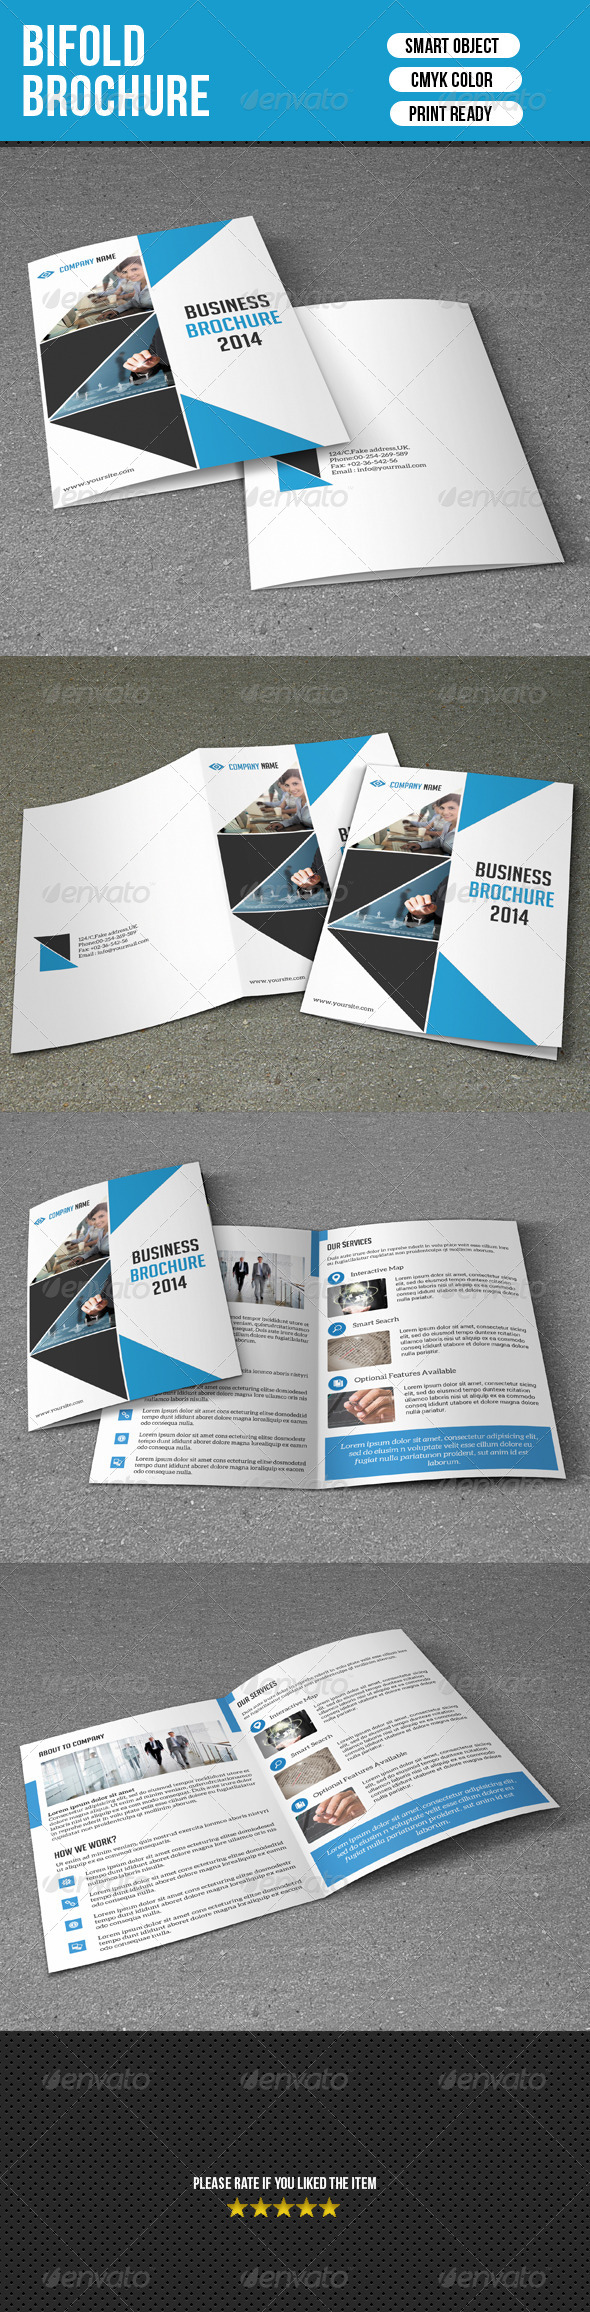 GraphicRiver Bifold Business Brochure 7638707